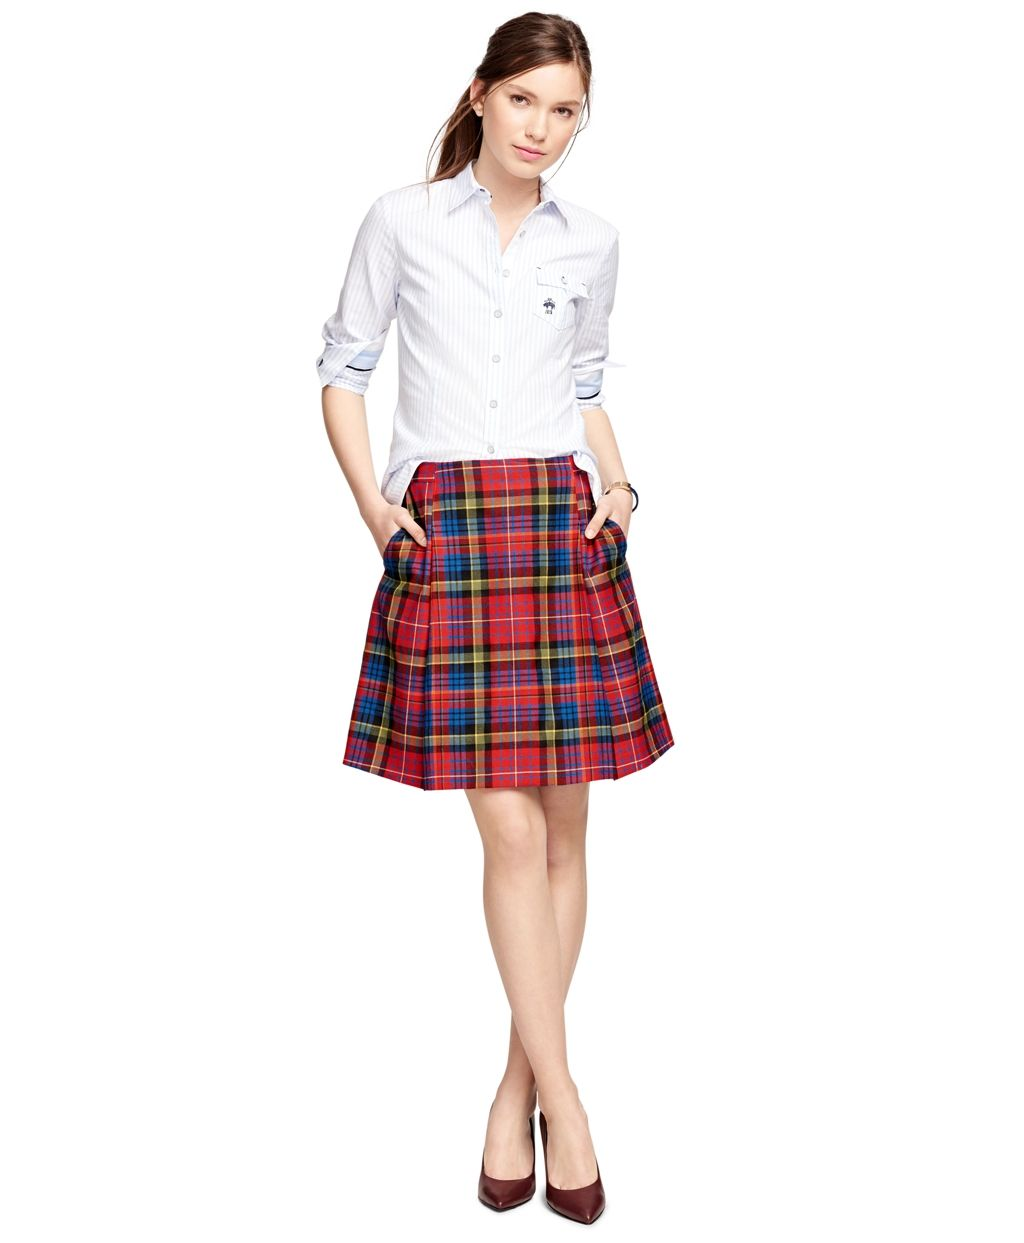 1e3a40b66 Plaid Skirt Make You Look Casual Style And Fit To Hang Out : Plaid Skirt  Outfit